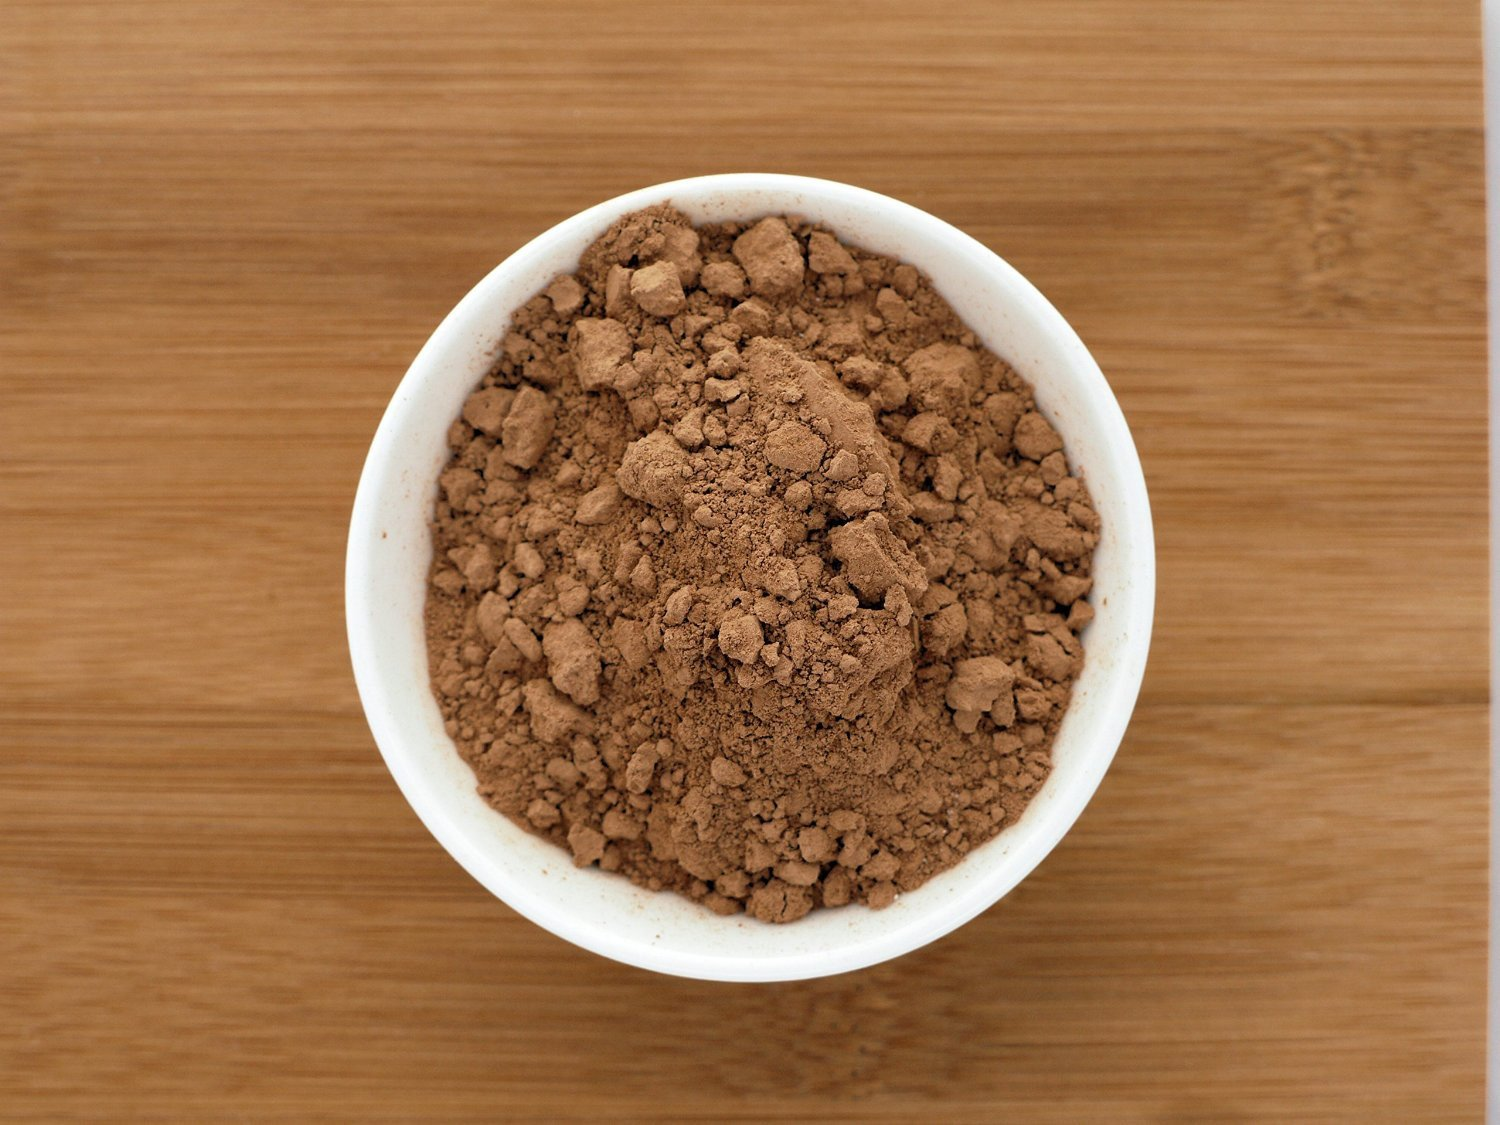 This is an image of a small white bowl containing Cocoa Powder from Anthony's Goods